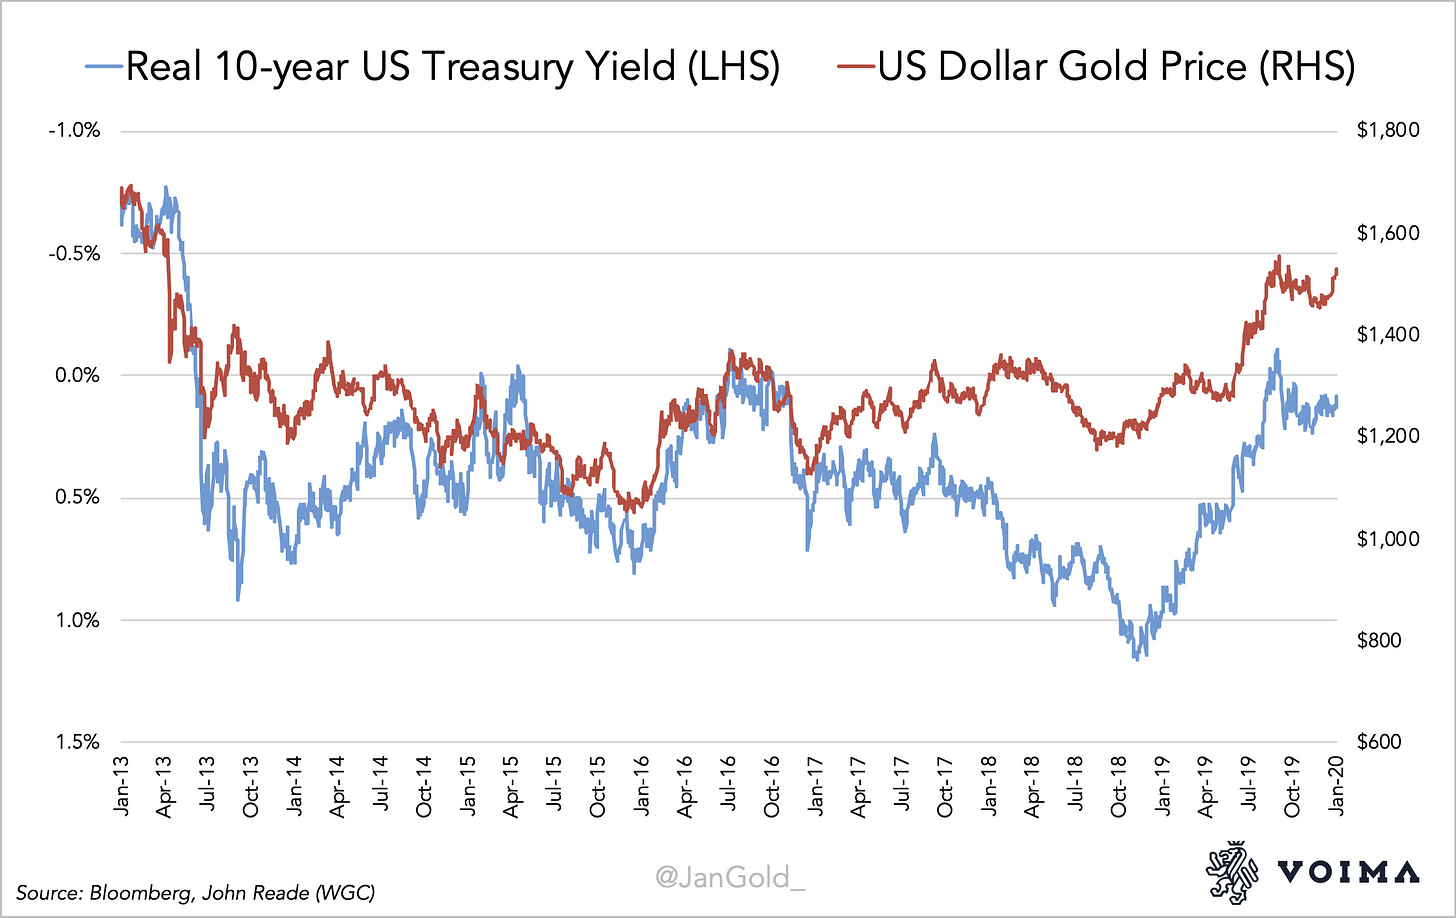 Real Interest Rates and US Dollar Gold Price